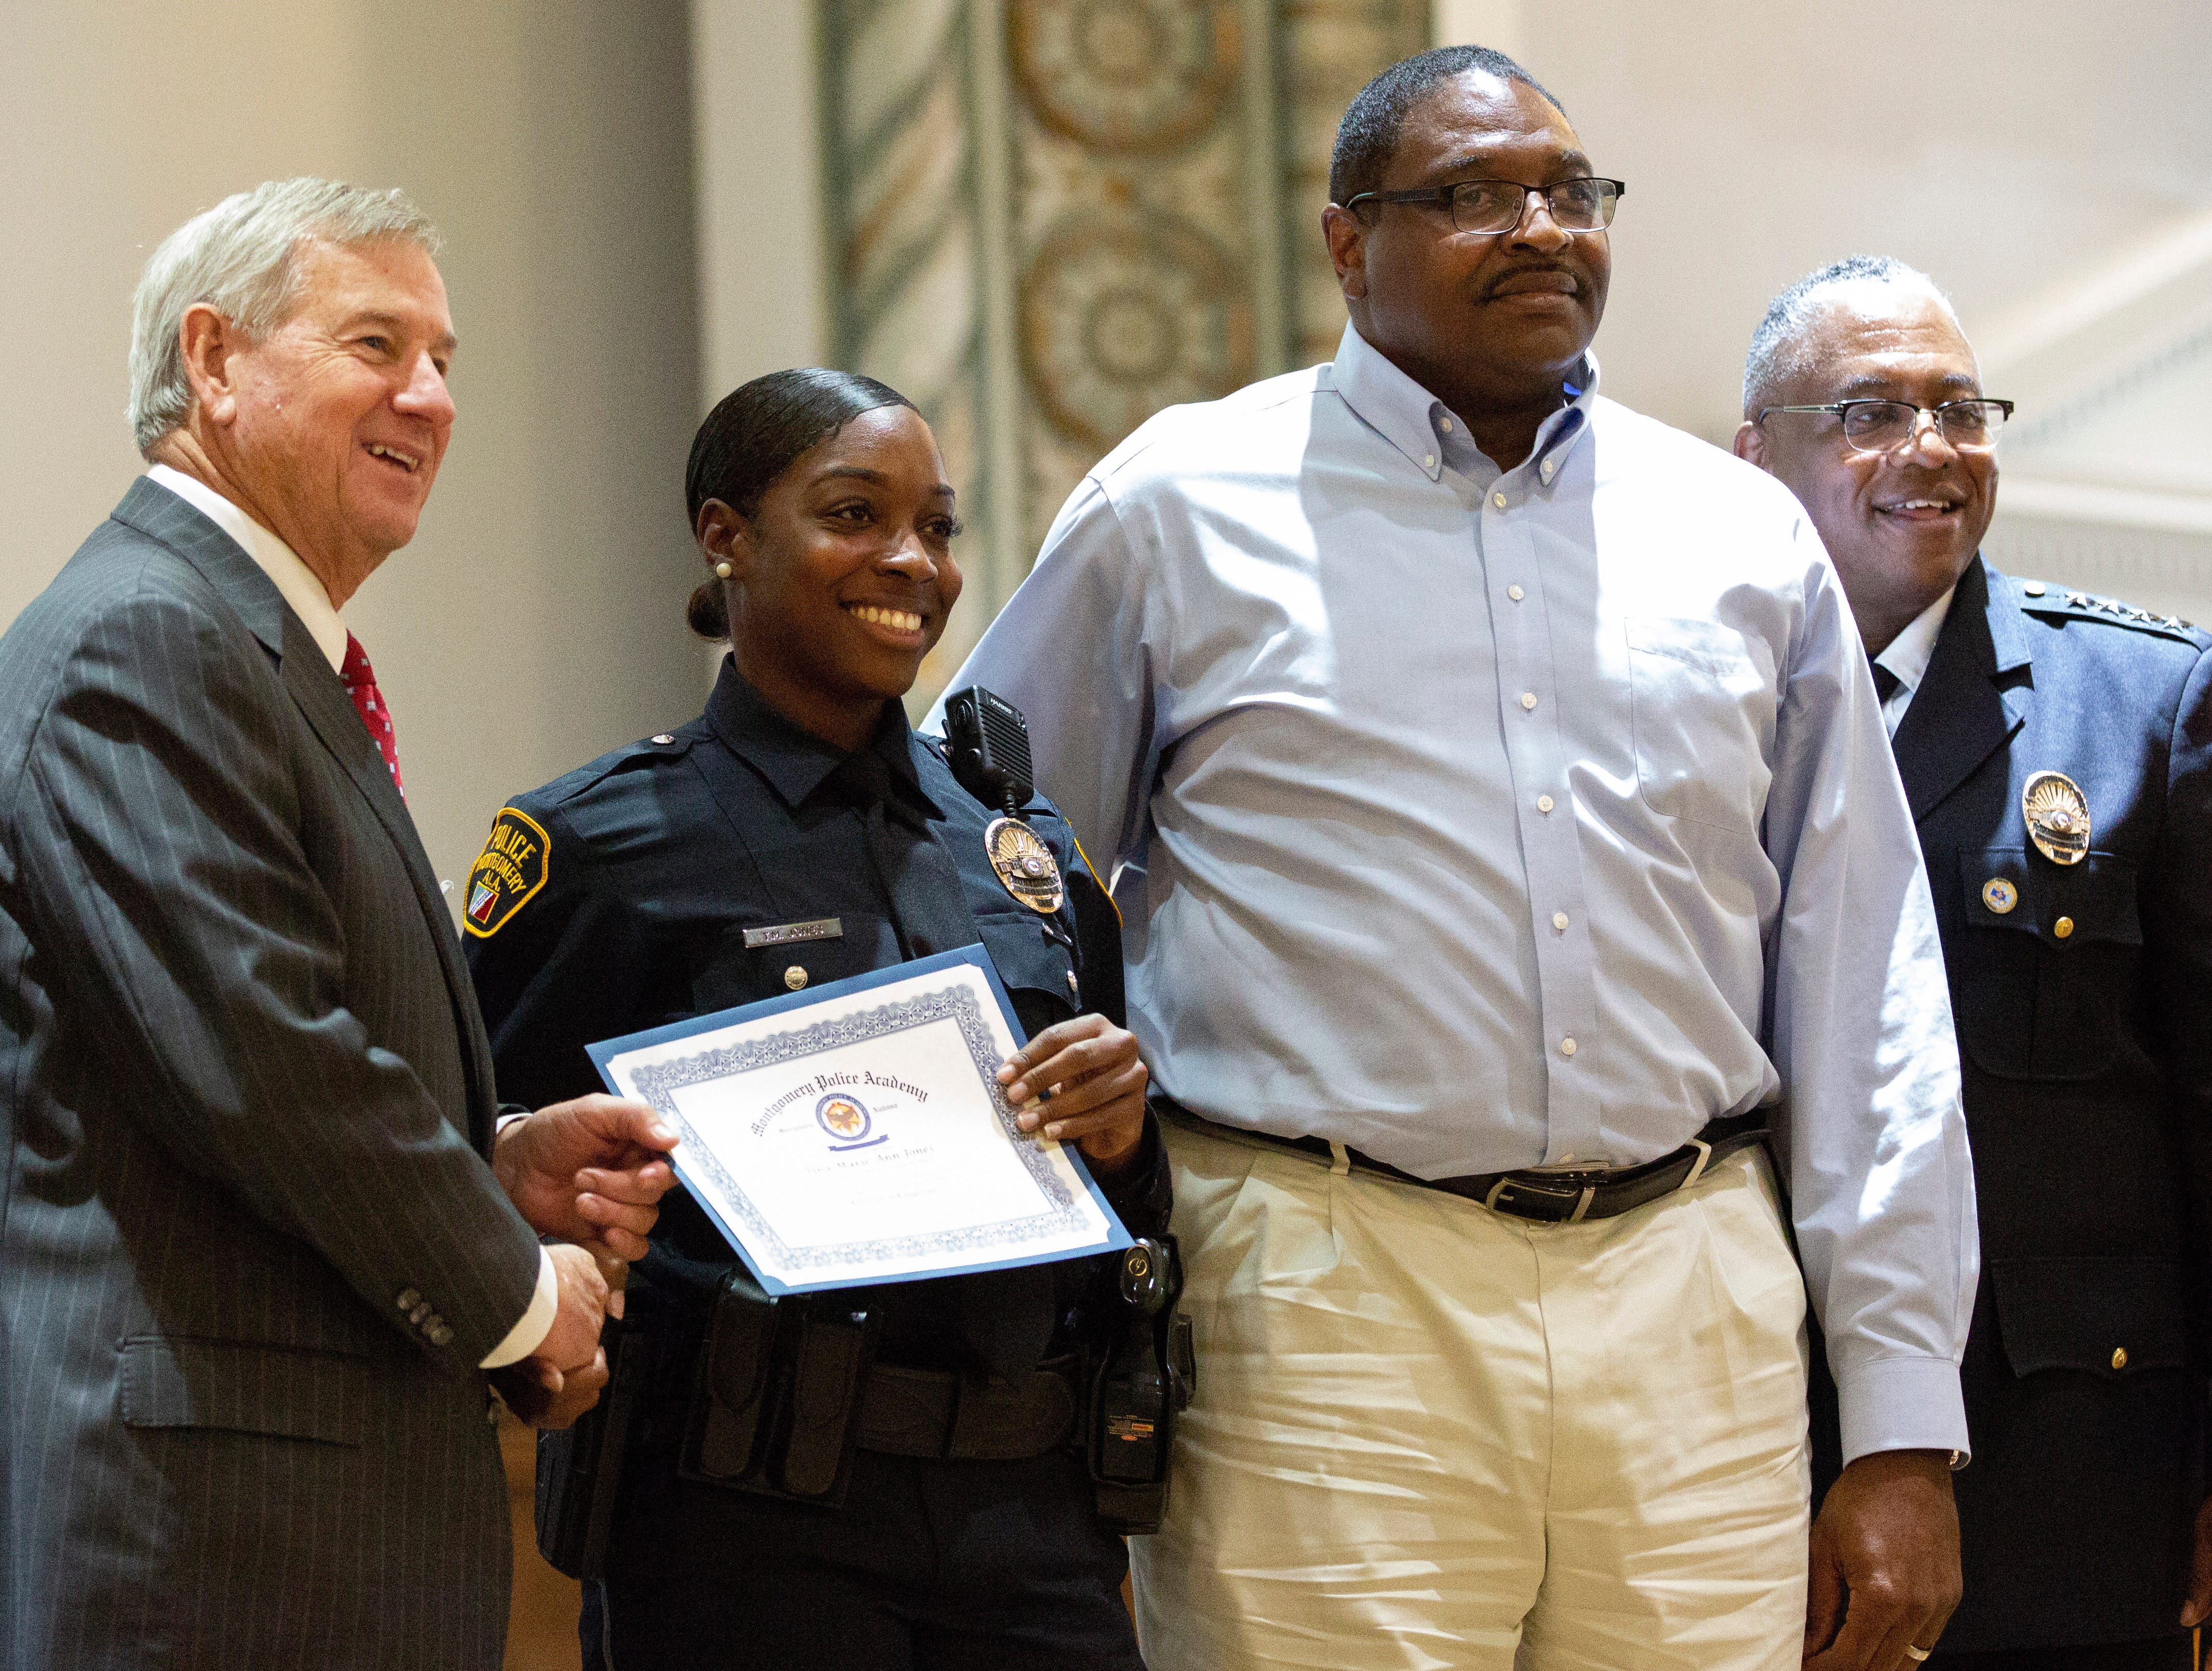 Montgomery police officer Tina Marie Jones poses for a photo after graduating from the academy.